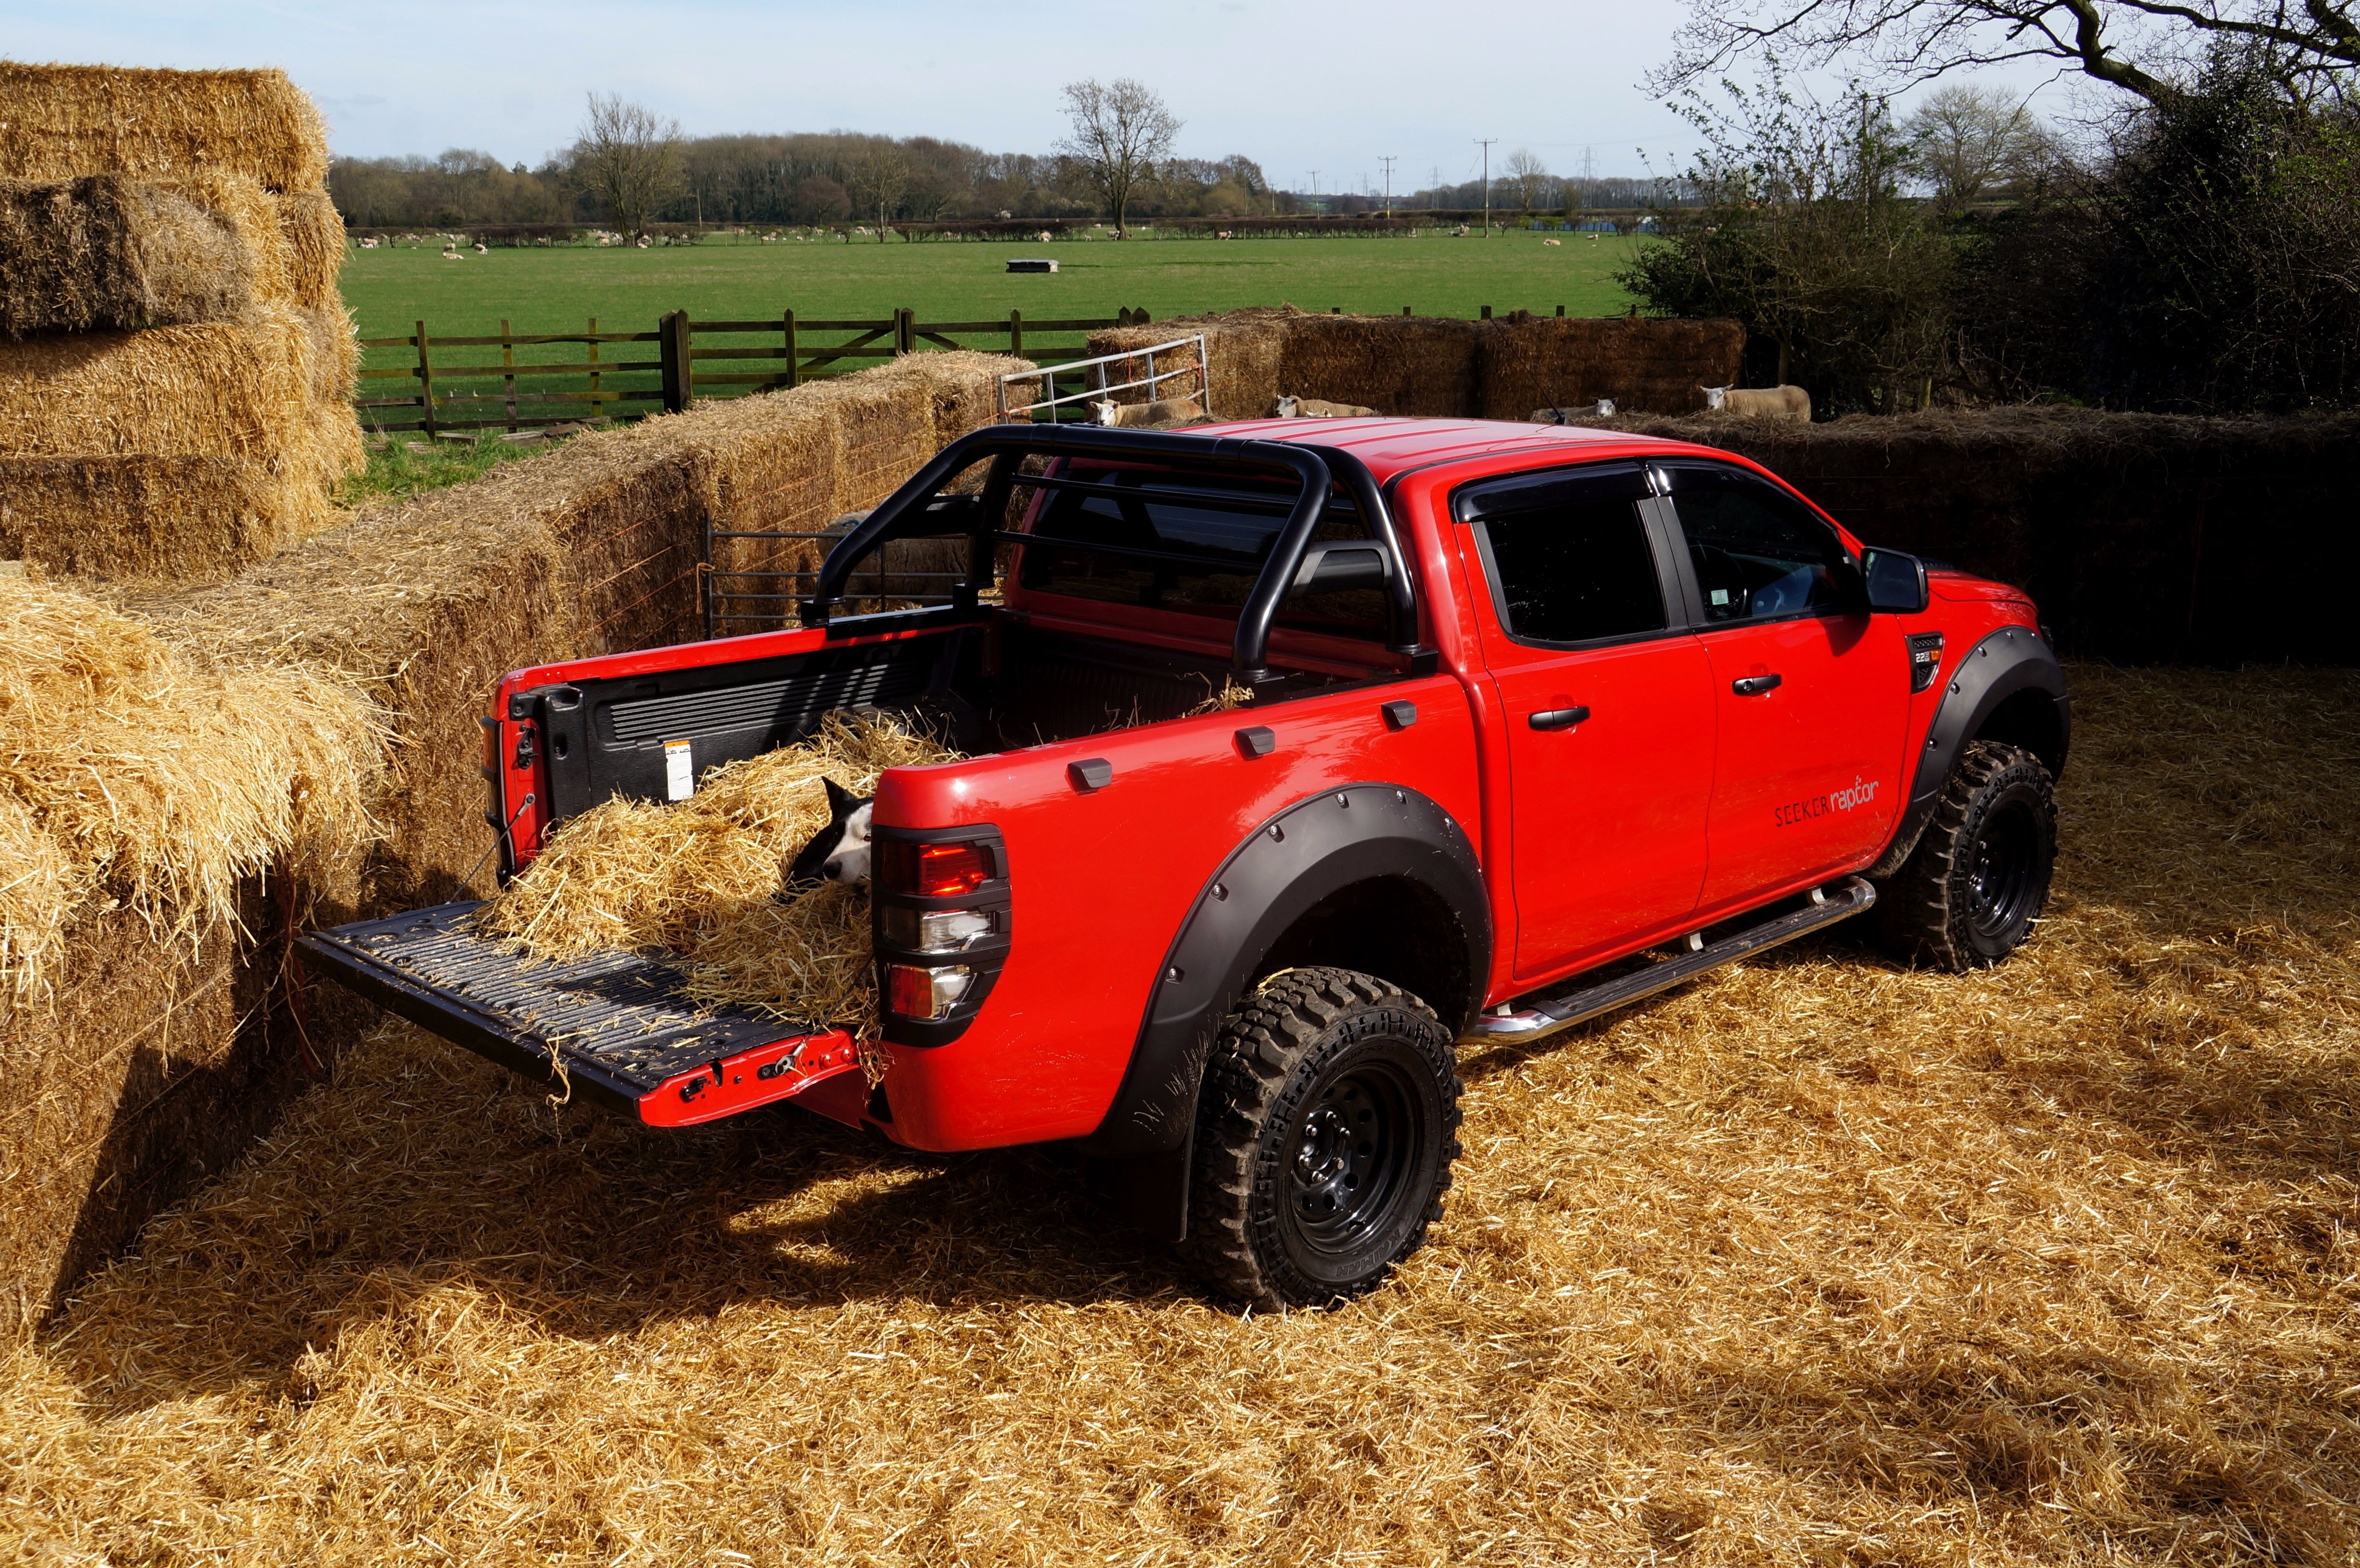 Ford Ranger SEEKER Raptor - the 'go anywhere', 'do anything' truck